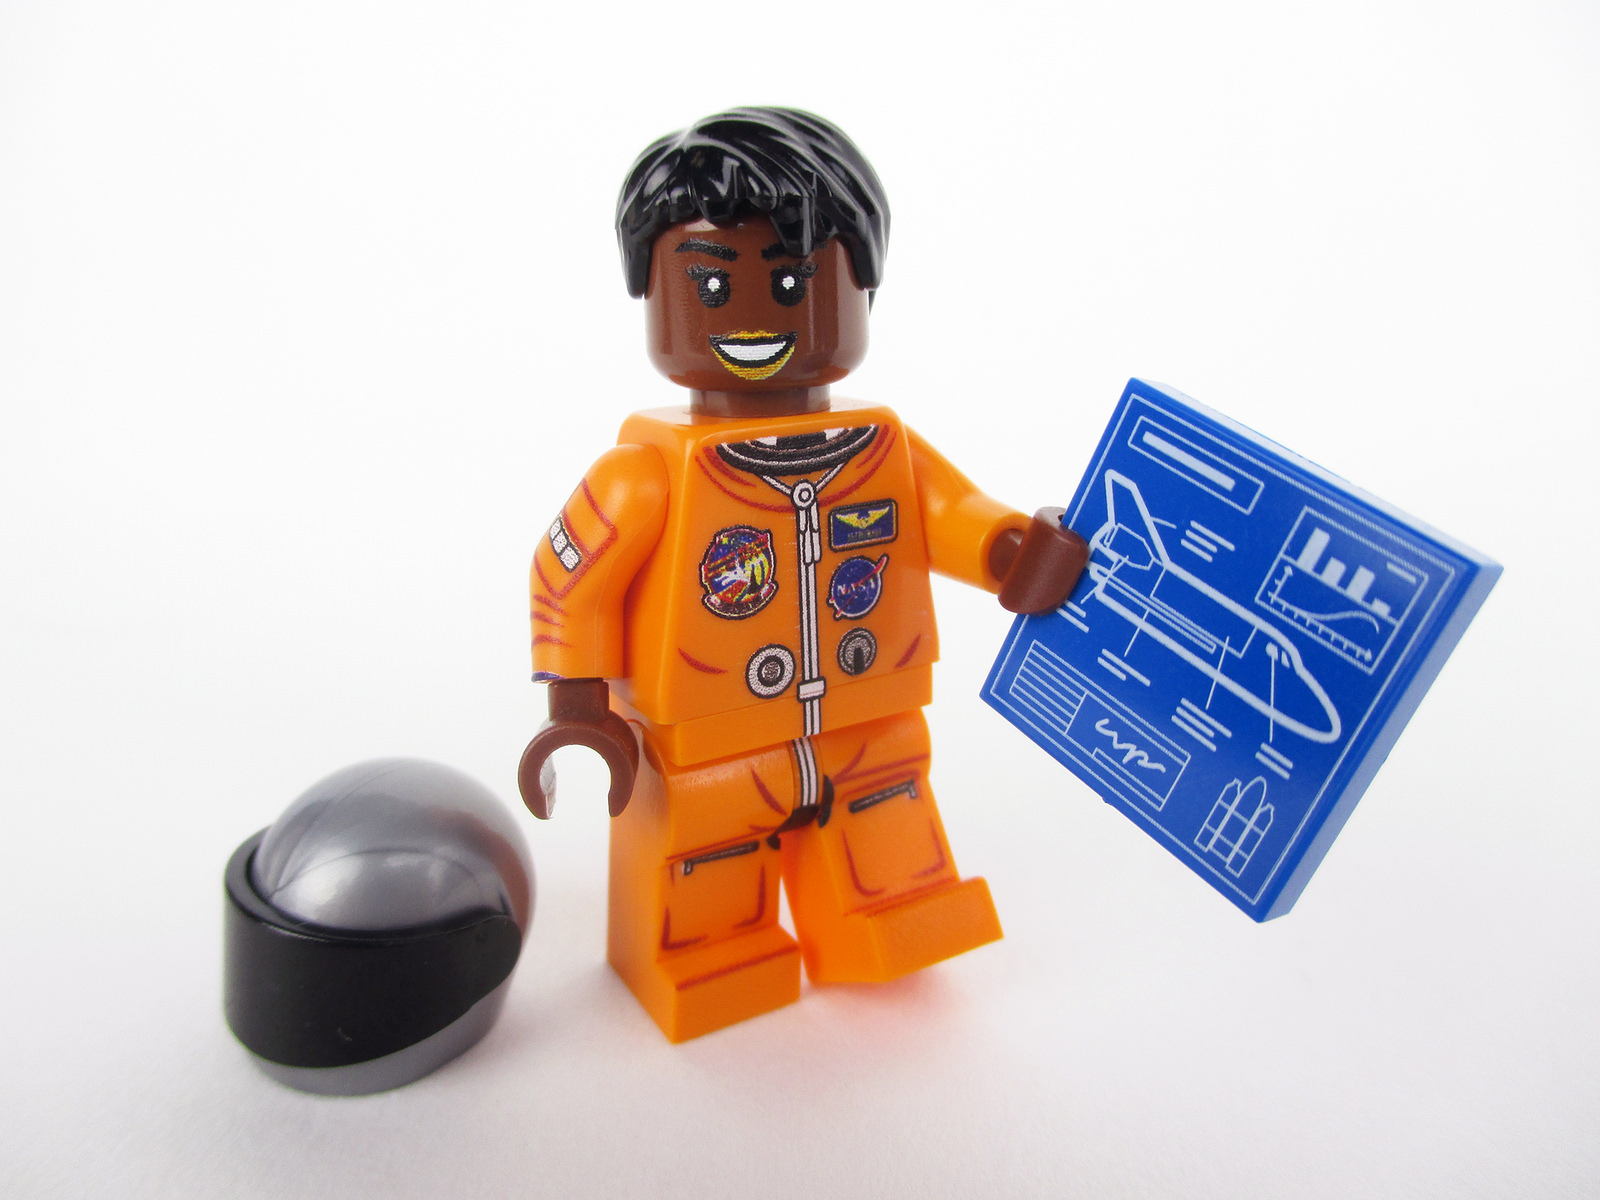 Come quick, Lego's thinking about making a female NASA ...